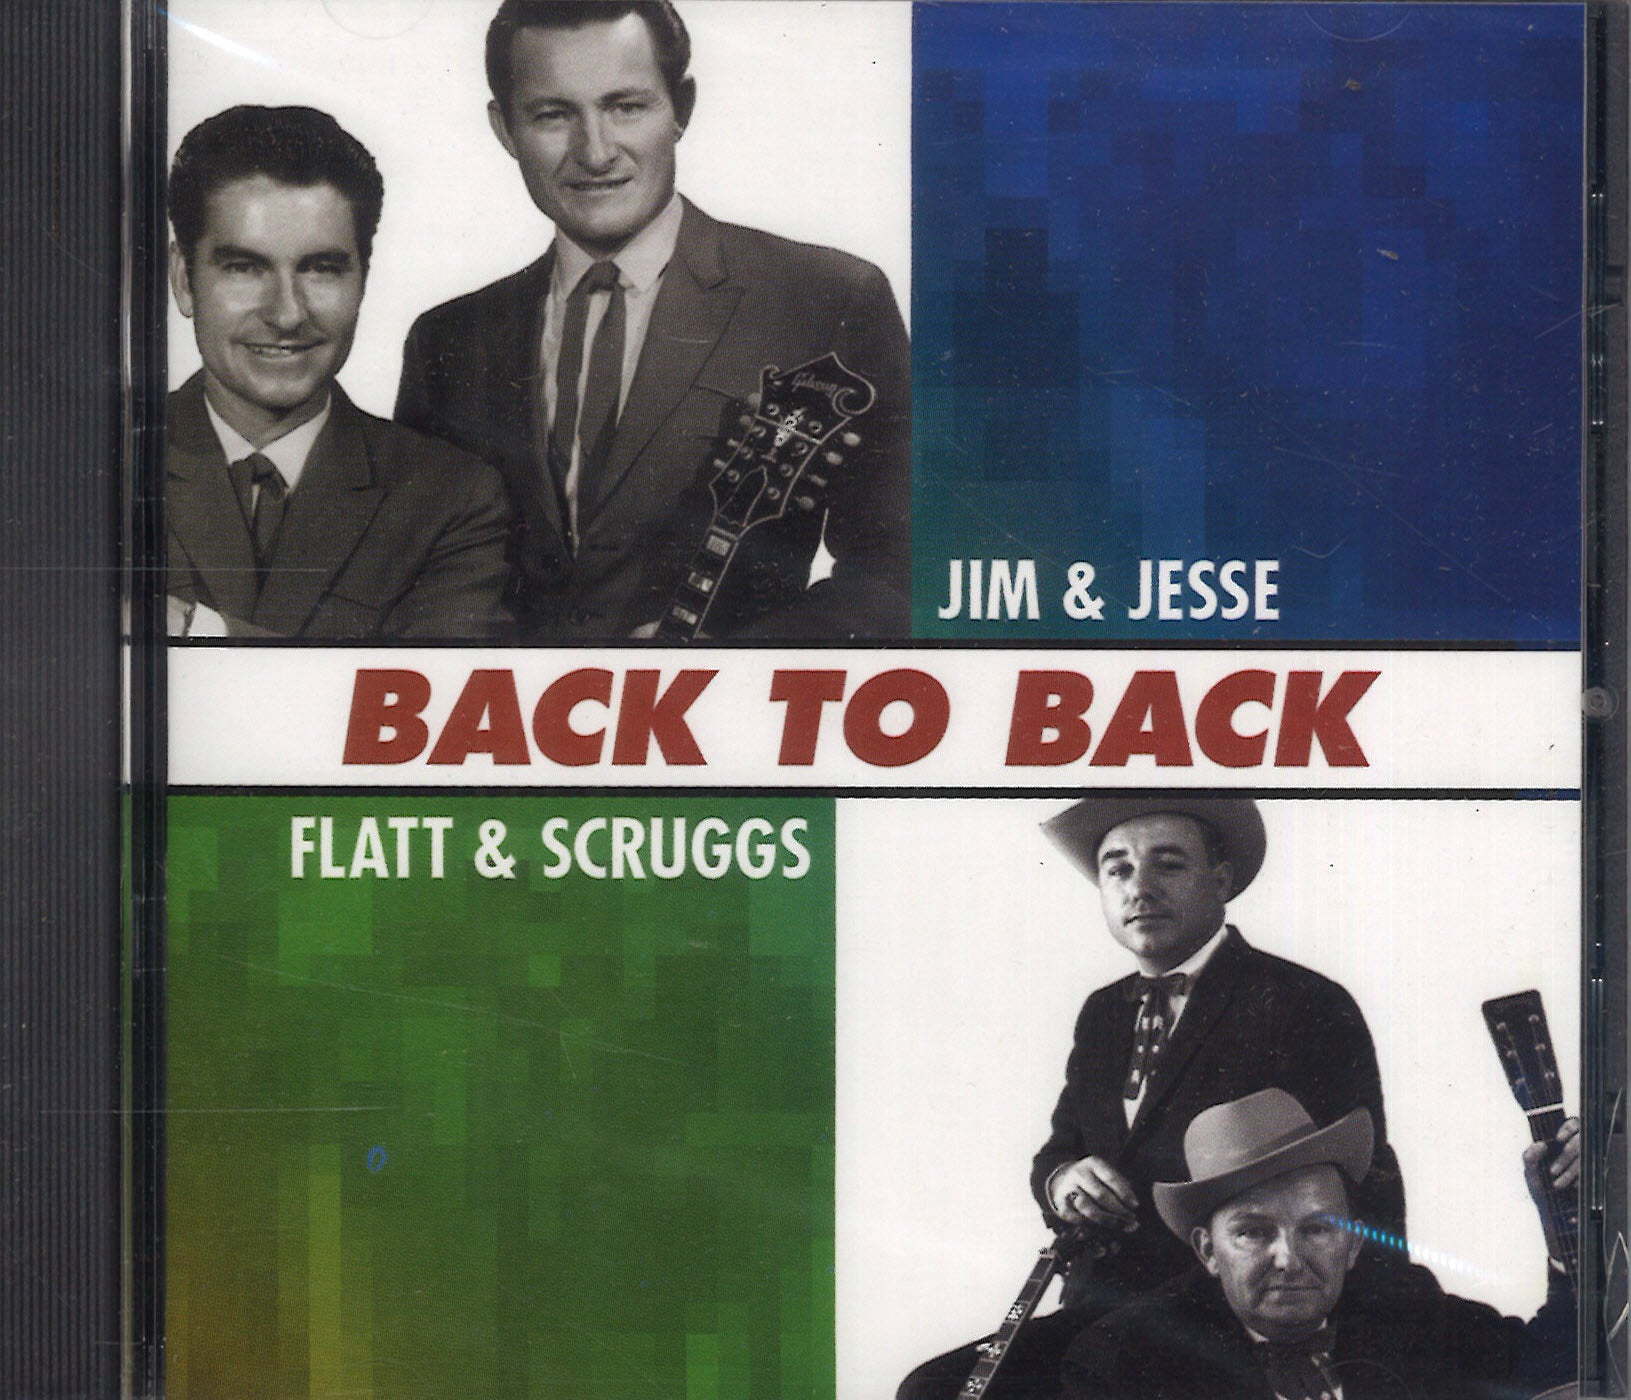 Flatt & Scruggs & Jim & Jesse Back To Back